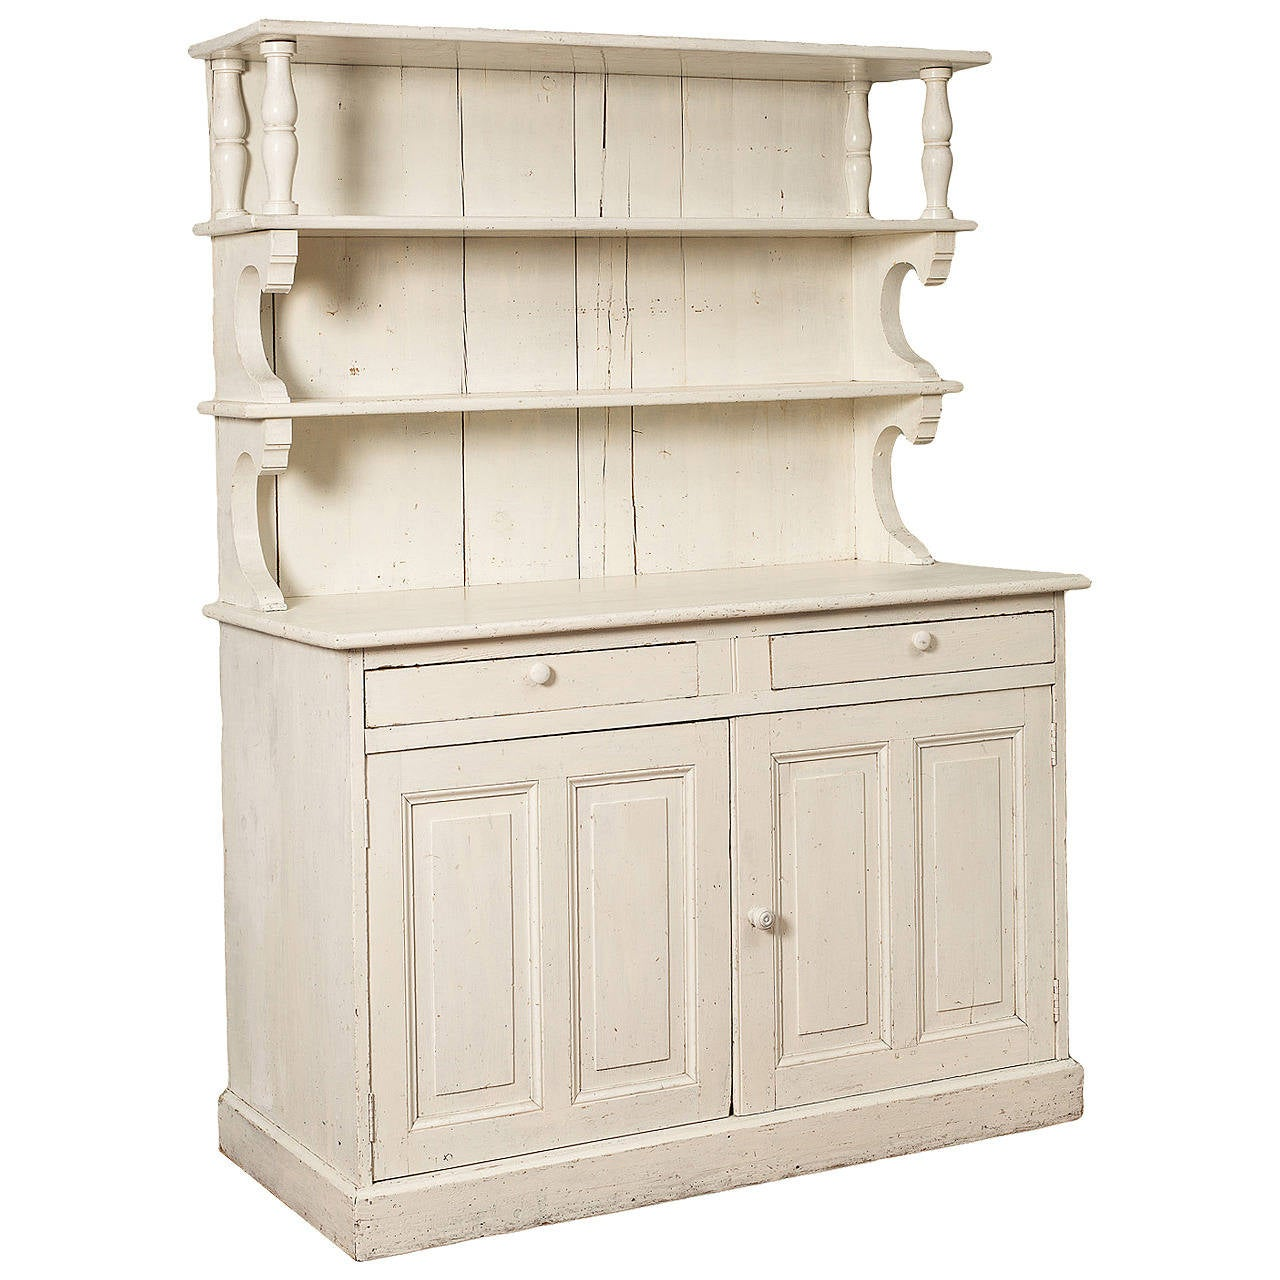 French Cupboard In Old White Paint, Circa 1900 For Sale